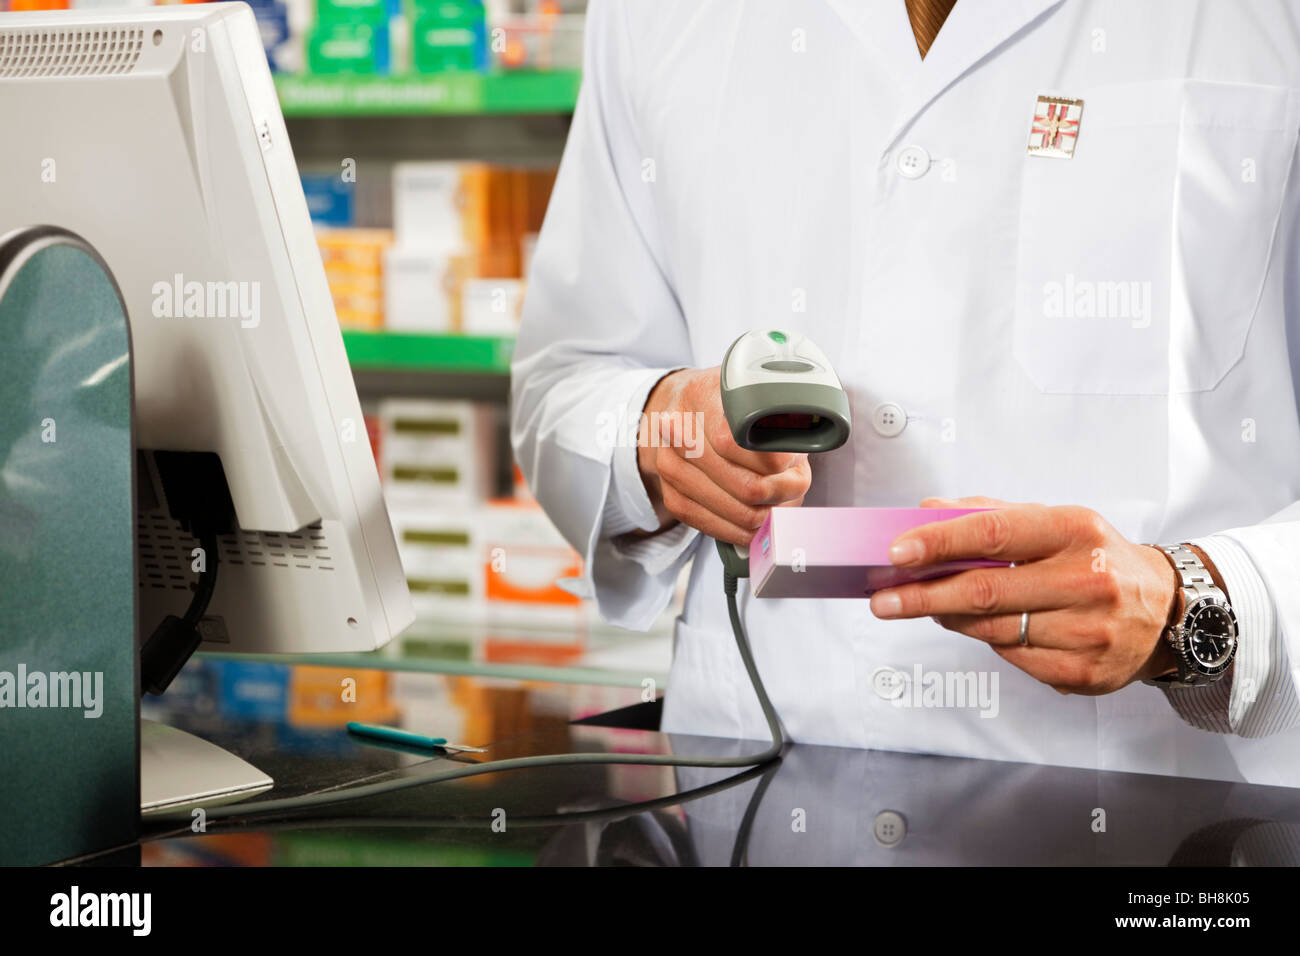 cropped view of pharmacist scanning medicine with barcode reader - Stock Image